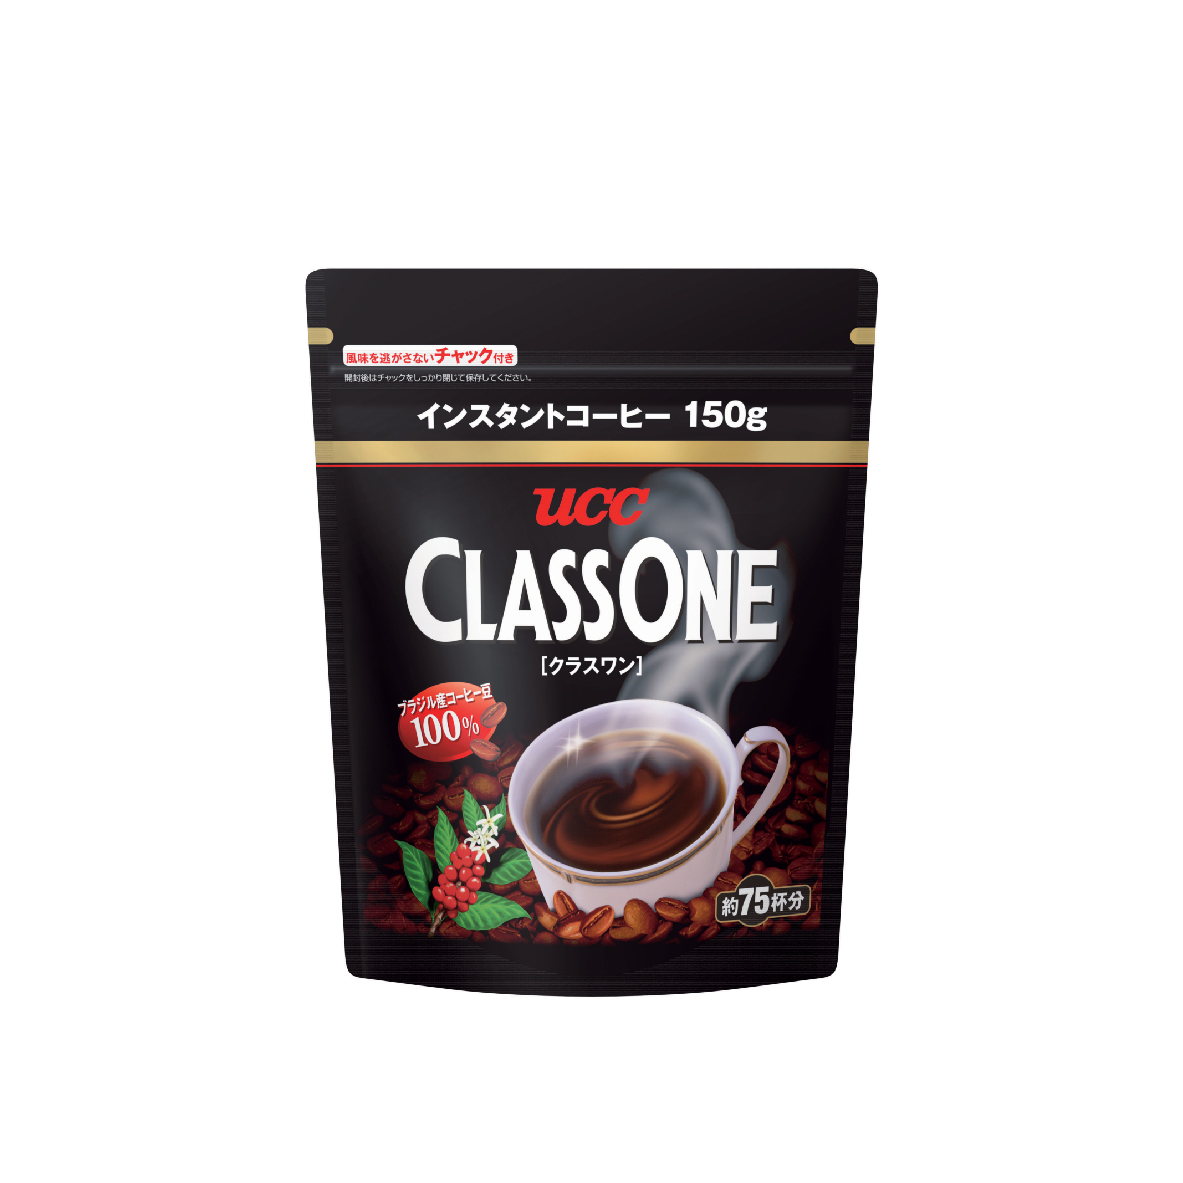 Class One Instant Coffee Pack